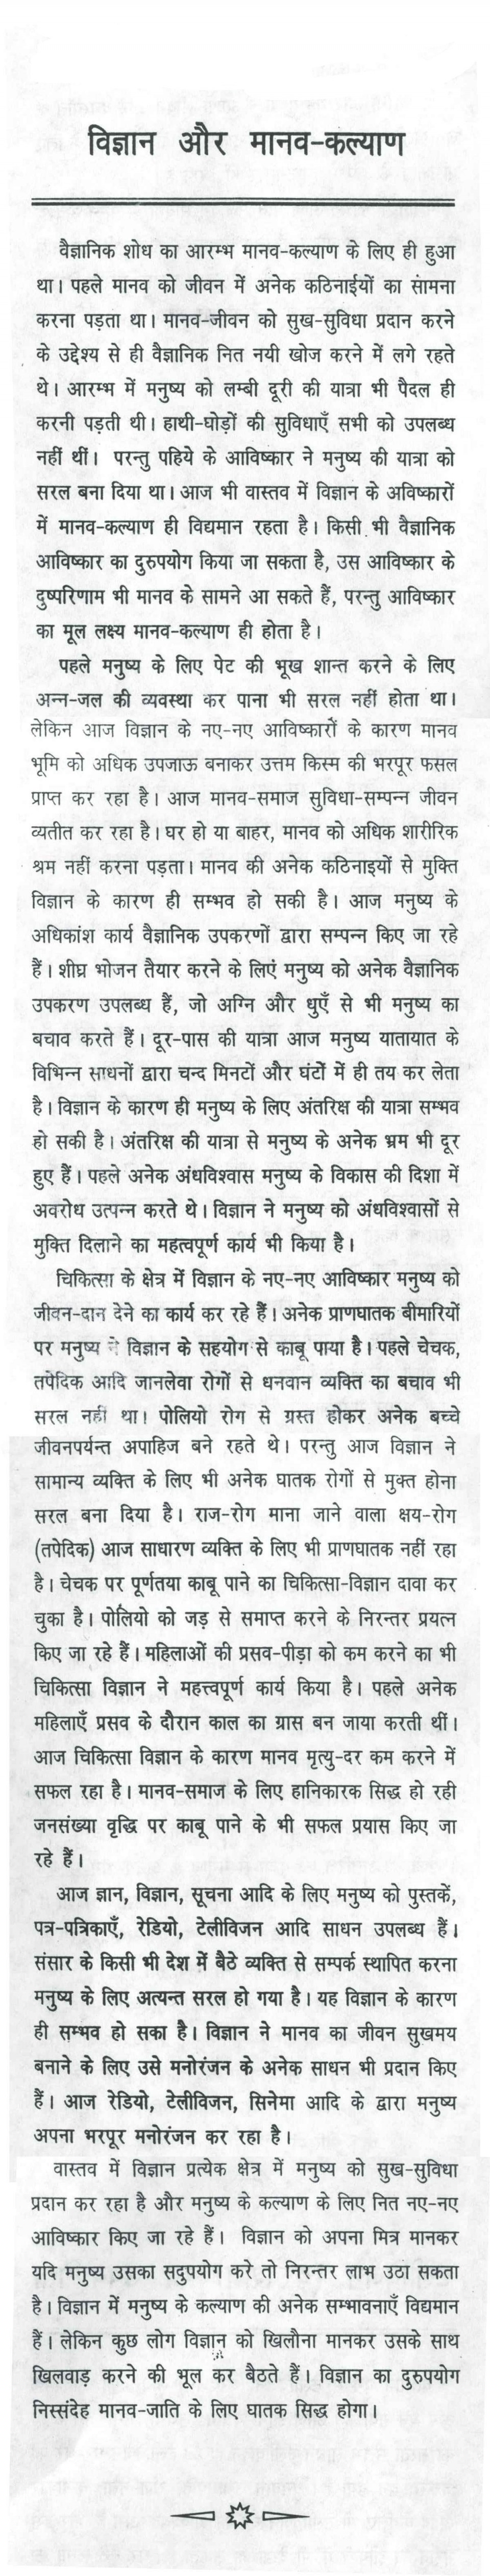 019 Advantage And Disadvantage Of Science Essay Example Benefit Education On Importance In Hindi Advantages Disadvantages Higher 10061 Benefits Shocking Pdf English 960